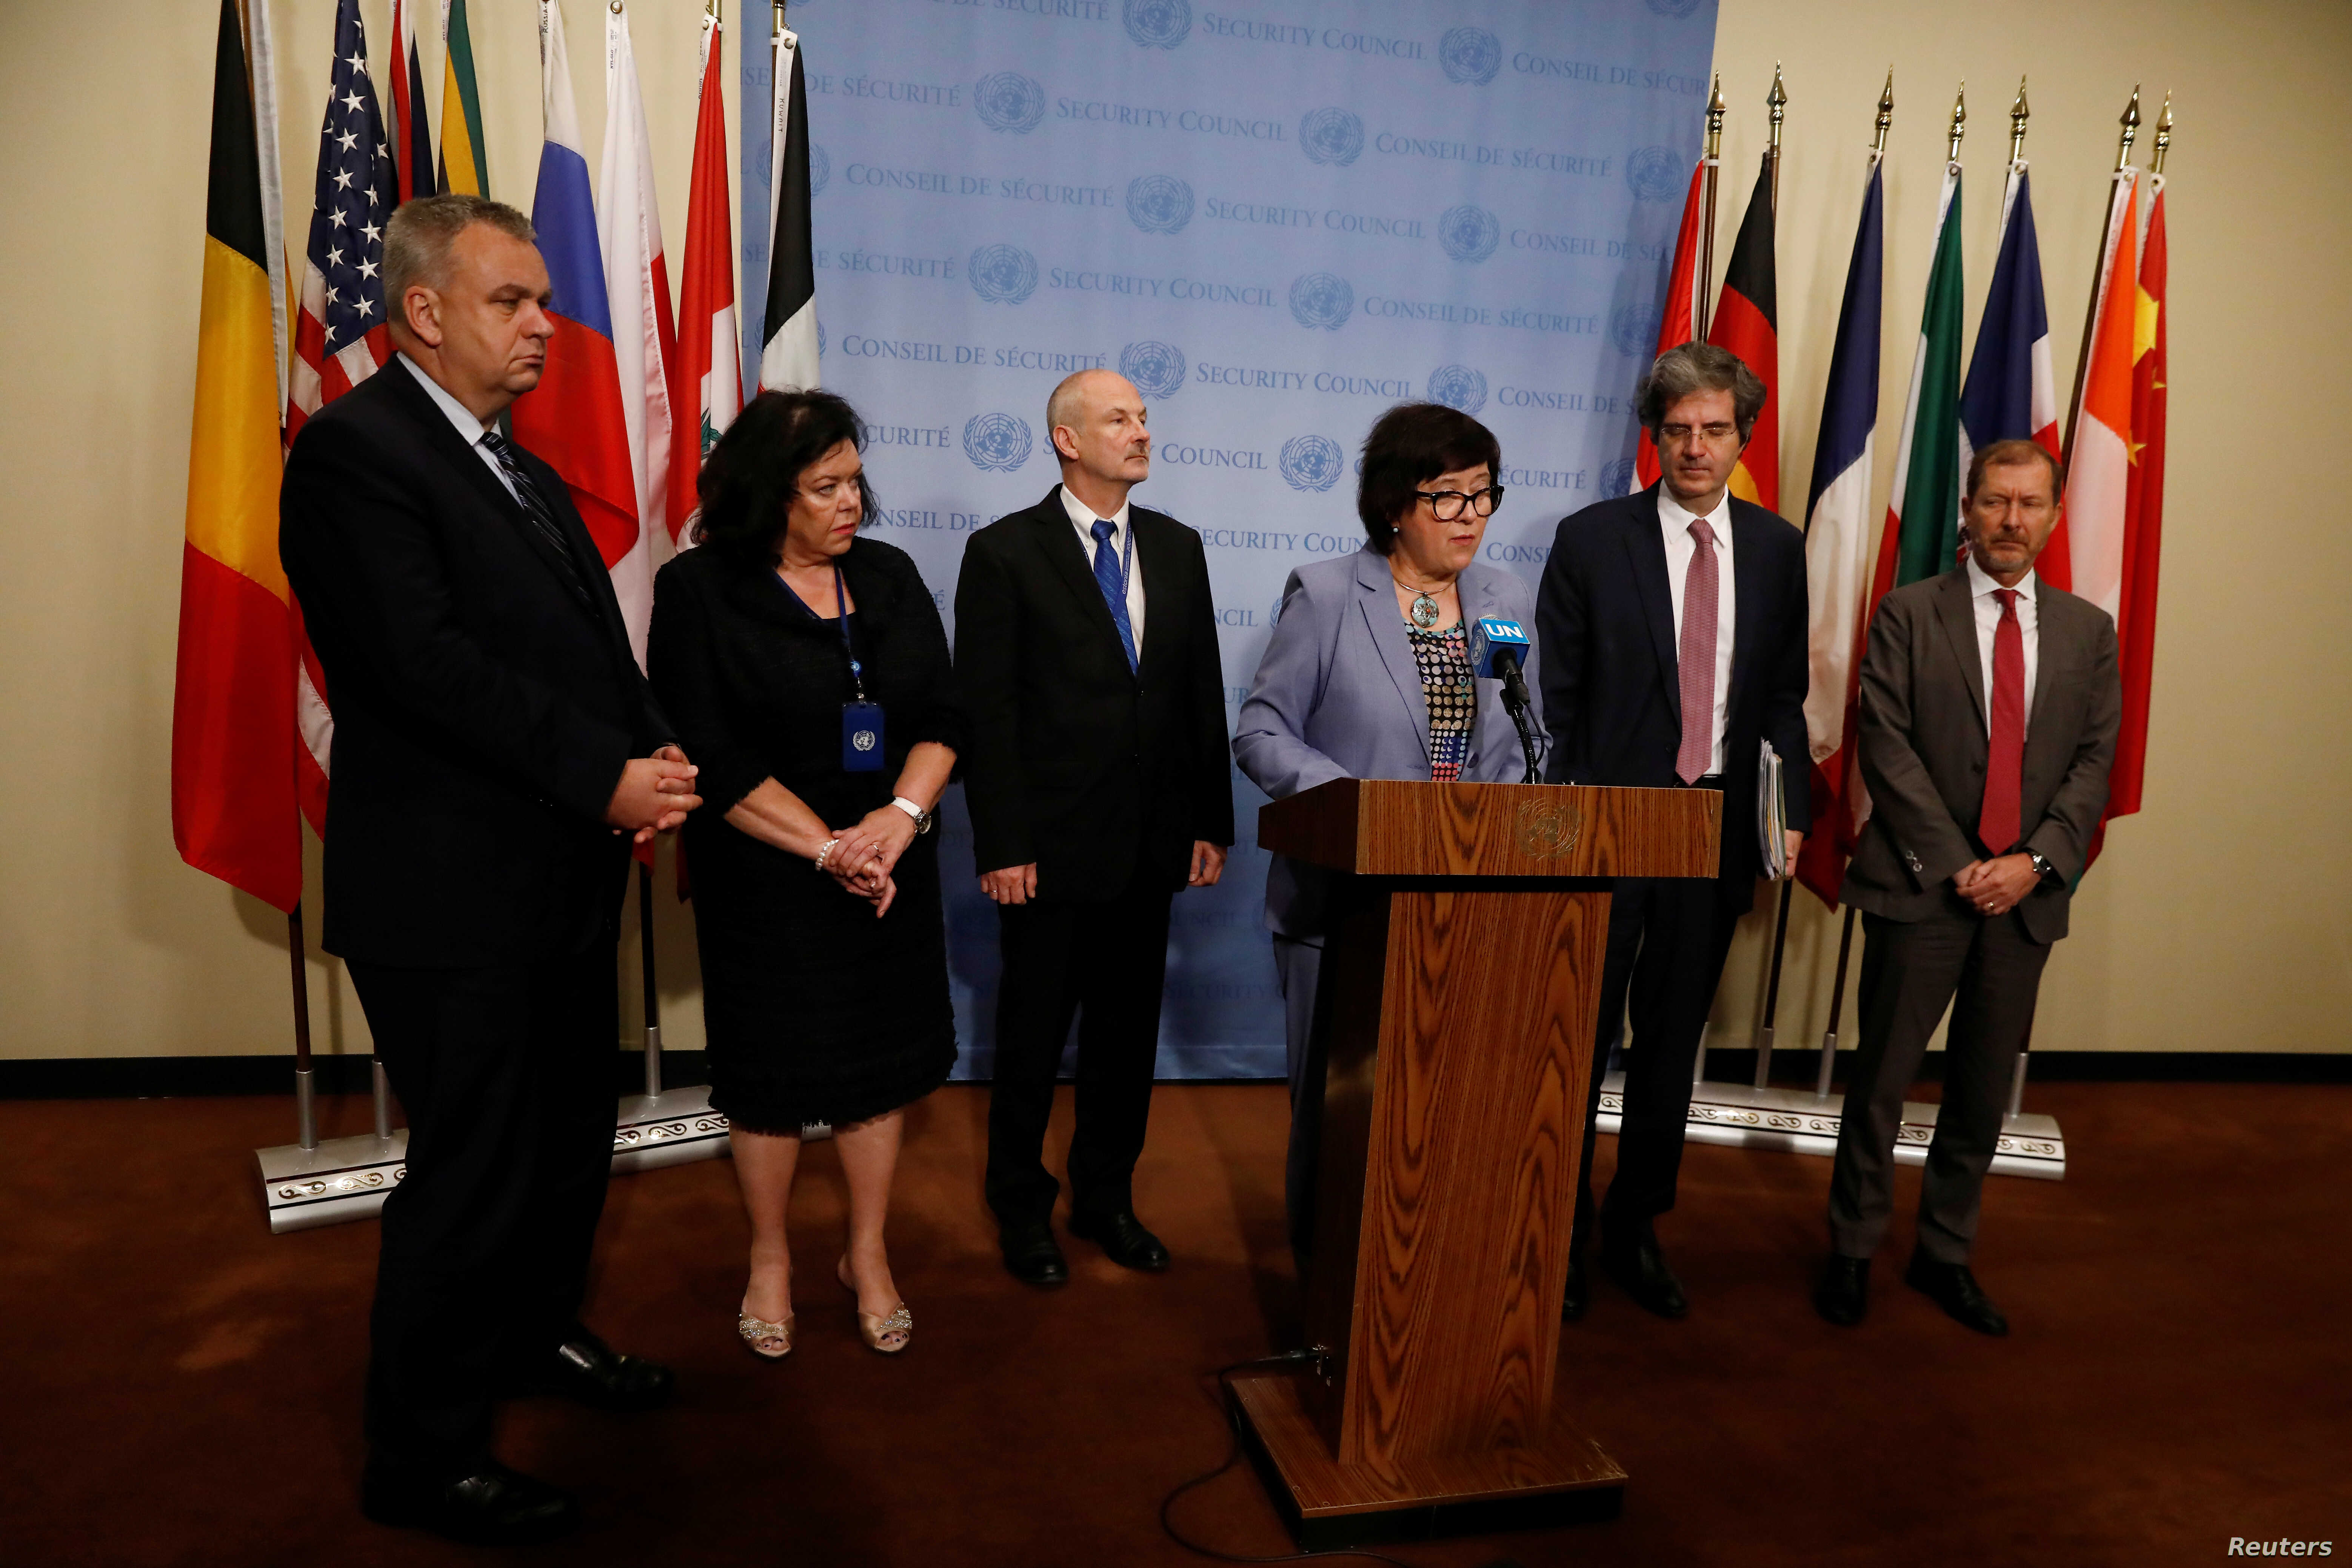 Joanna Wronecka, Polish Ambassador to the United Nations, speaks next to representatives from Germany, the United Kingdom, Estonia, France and Belgium after the U.N. Security Council briefings on the Iran nuclear deal, in New York, June 26, 2019.